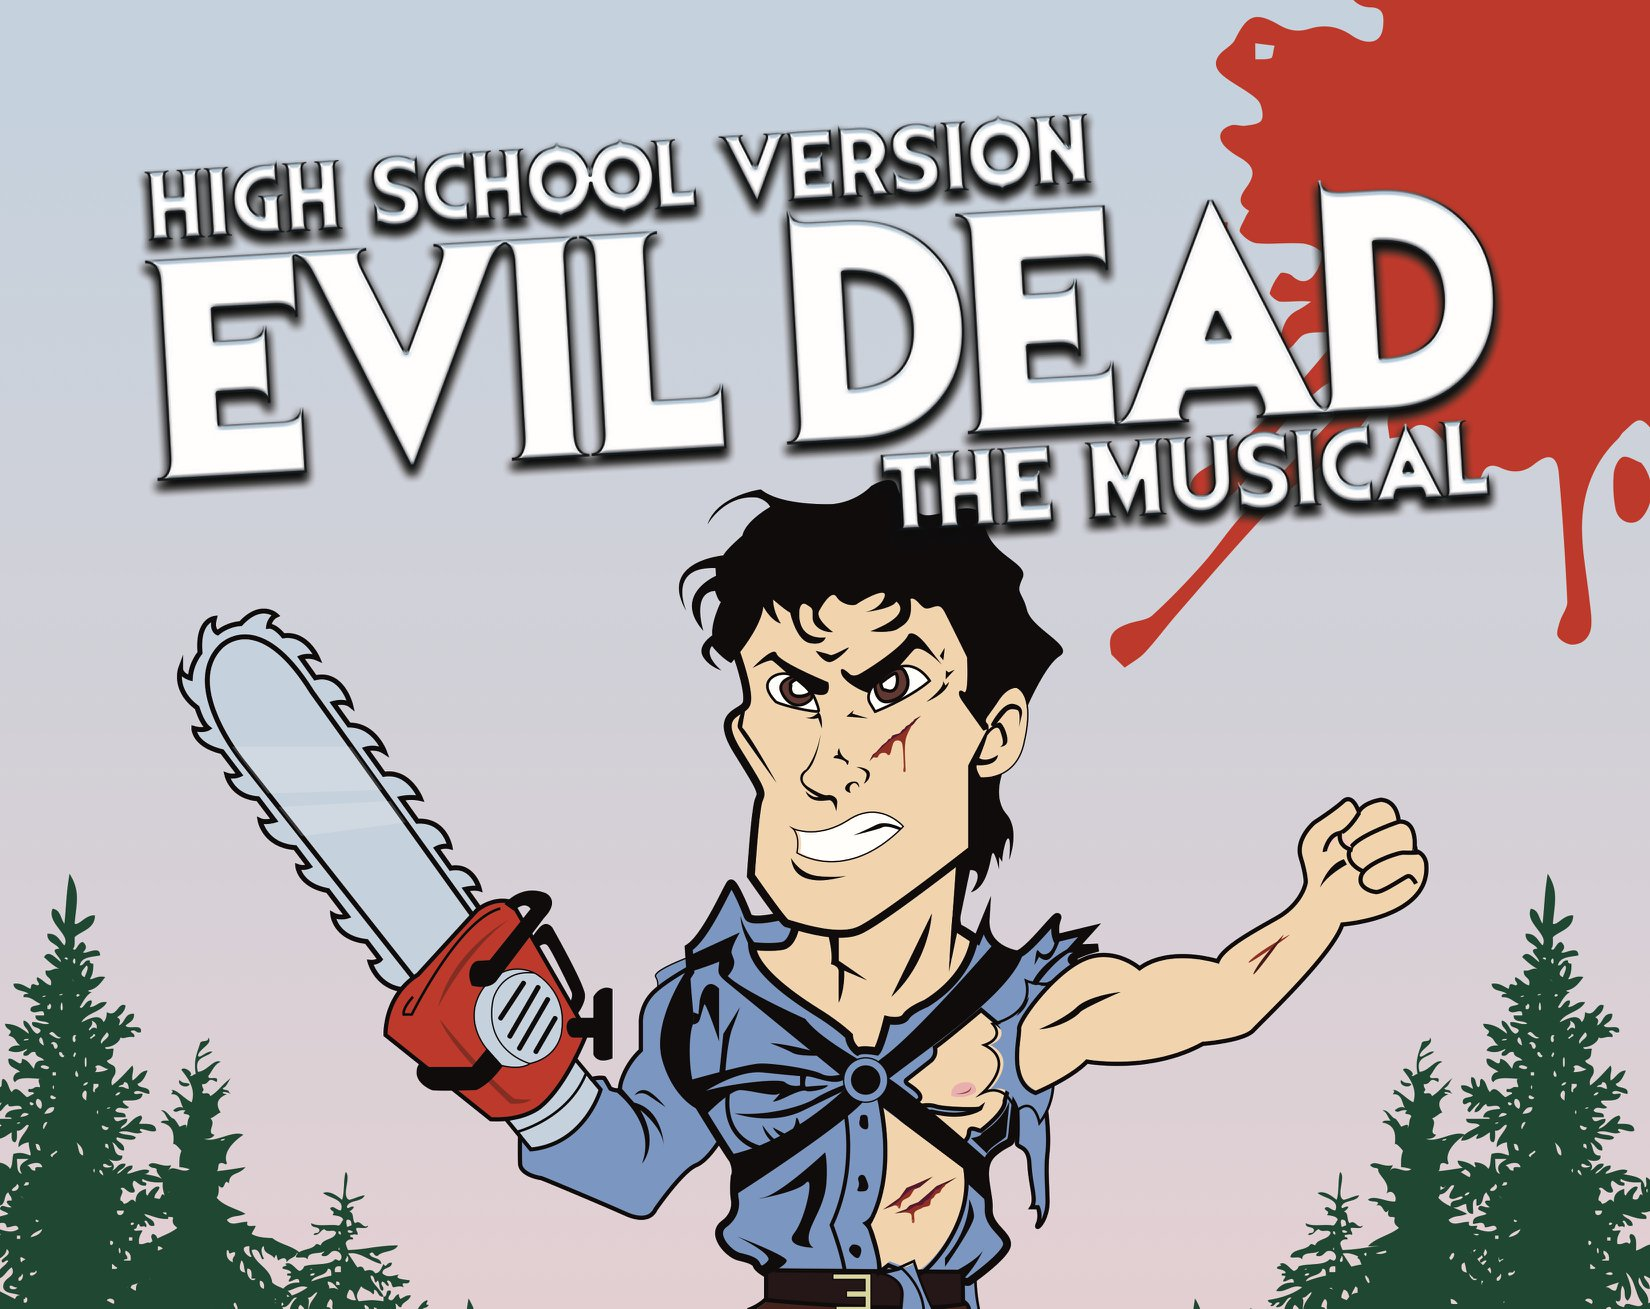 """High School:Evil Dead: The Musical (High School Version) - """"It's the Evil Dead!"""" Our high schoolers will tackle the crazy, campy genre of horror comedy with an age appropriate* version of Evil Dead: The Musical. Demons and dance numbers galore! This class culminates in a full production.This class is by audition only. Email education@townhalltheatre.com to set up an audition.*THEd does not encourage our students to watch the source material for this piece. The high school version has been heavily edited to be appropriate for our students. - Book and lyrics by George ReinblattMusic by Frank Cipolla, Christopher Bond, Melissa Morris and George ReinblattMusic supervision by Frank Cipolla Additional lyrics by Christopher Bond Additional music by Robe Daleman"""